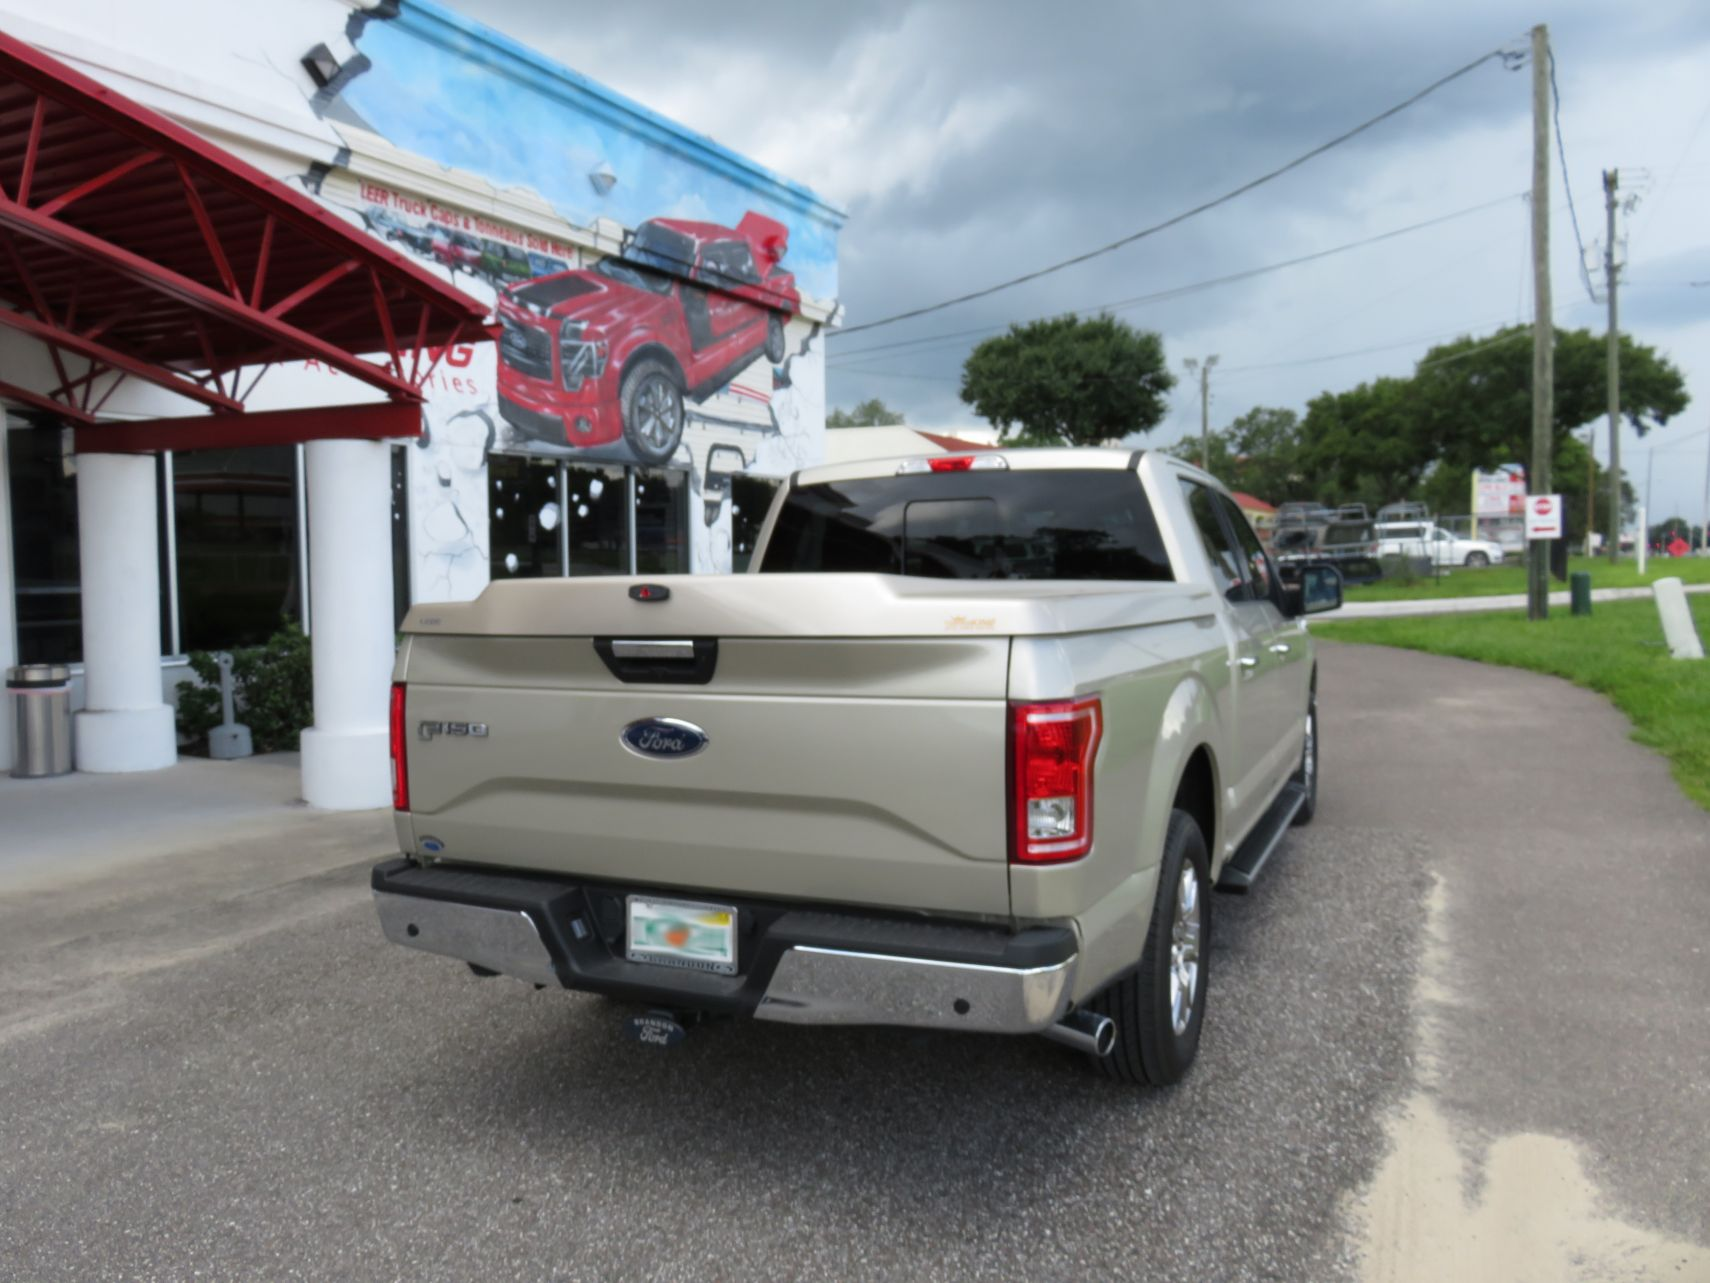 2017 Ford F150 with a Leer 700, Nerf Bars, Custom Hitch, and Tint by TopperKING in Brandon, FL 813-689-2449 or Clearwater, FL 727-530-9066. Call today!